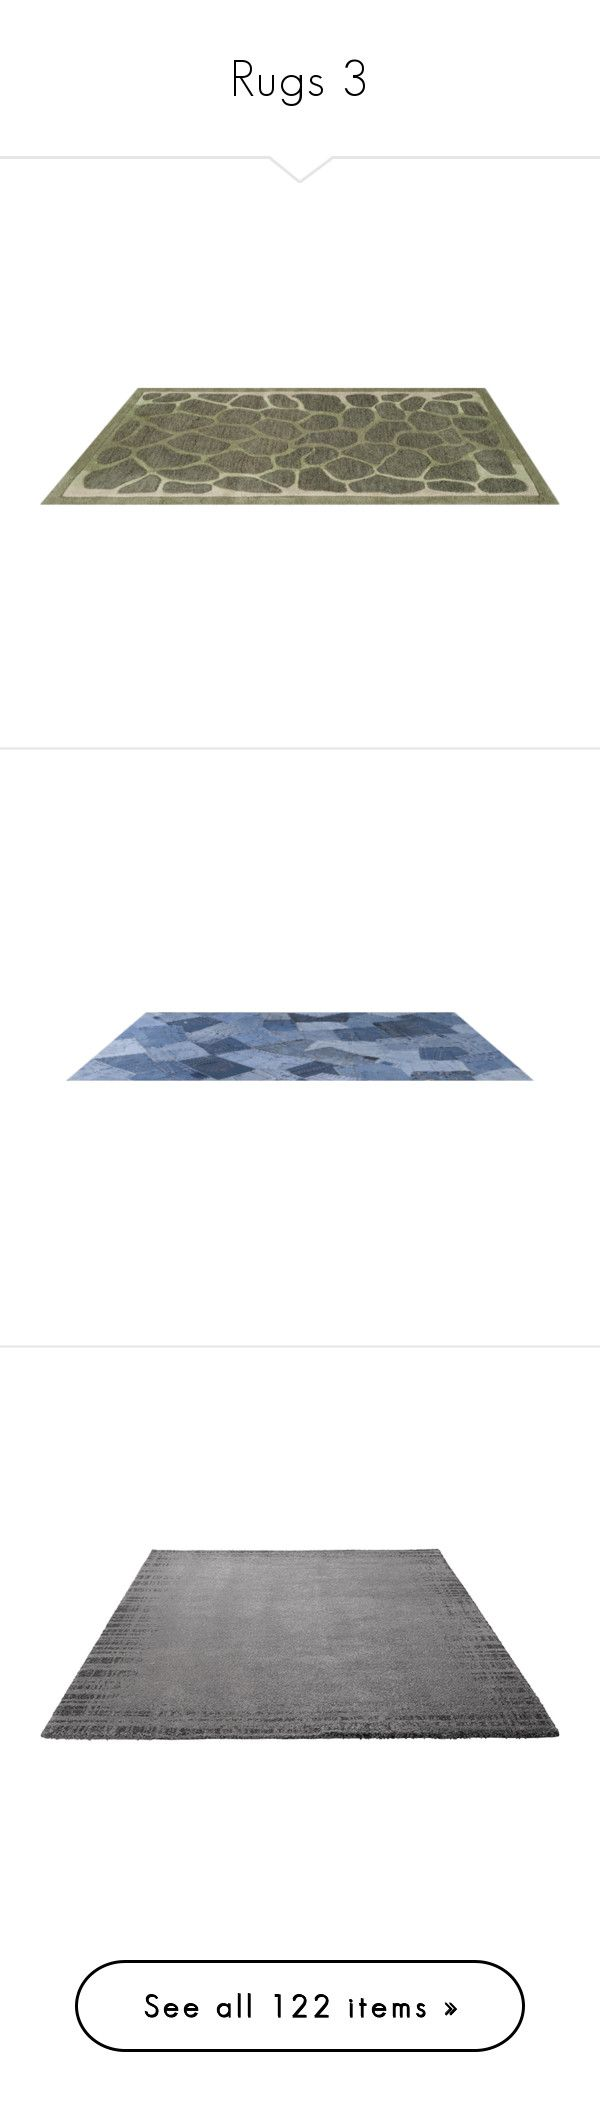 """""""Rugs 3"""" by mysfytdesigns ❤ liked on Polyvore featuring rugs, tapetes, floor, home, floors, grey rug, border rug, gray stripe rug, border area rugs and gray rug"""